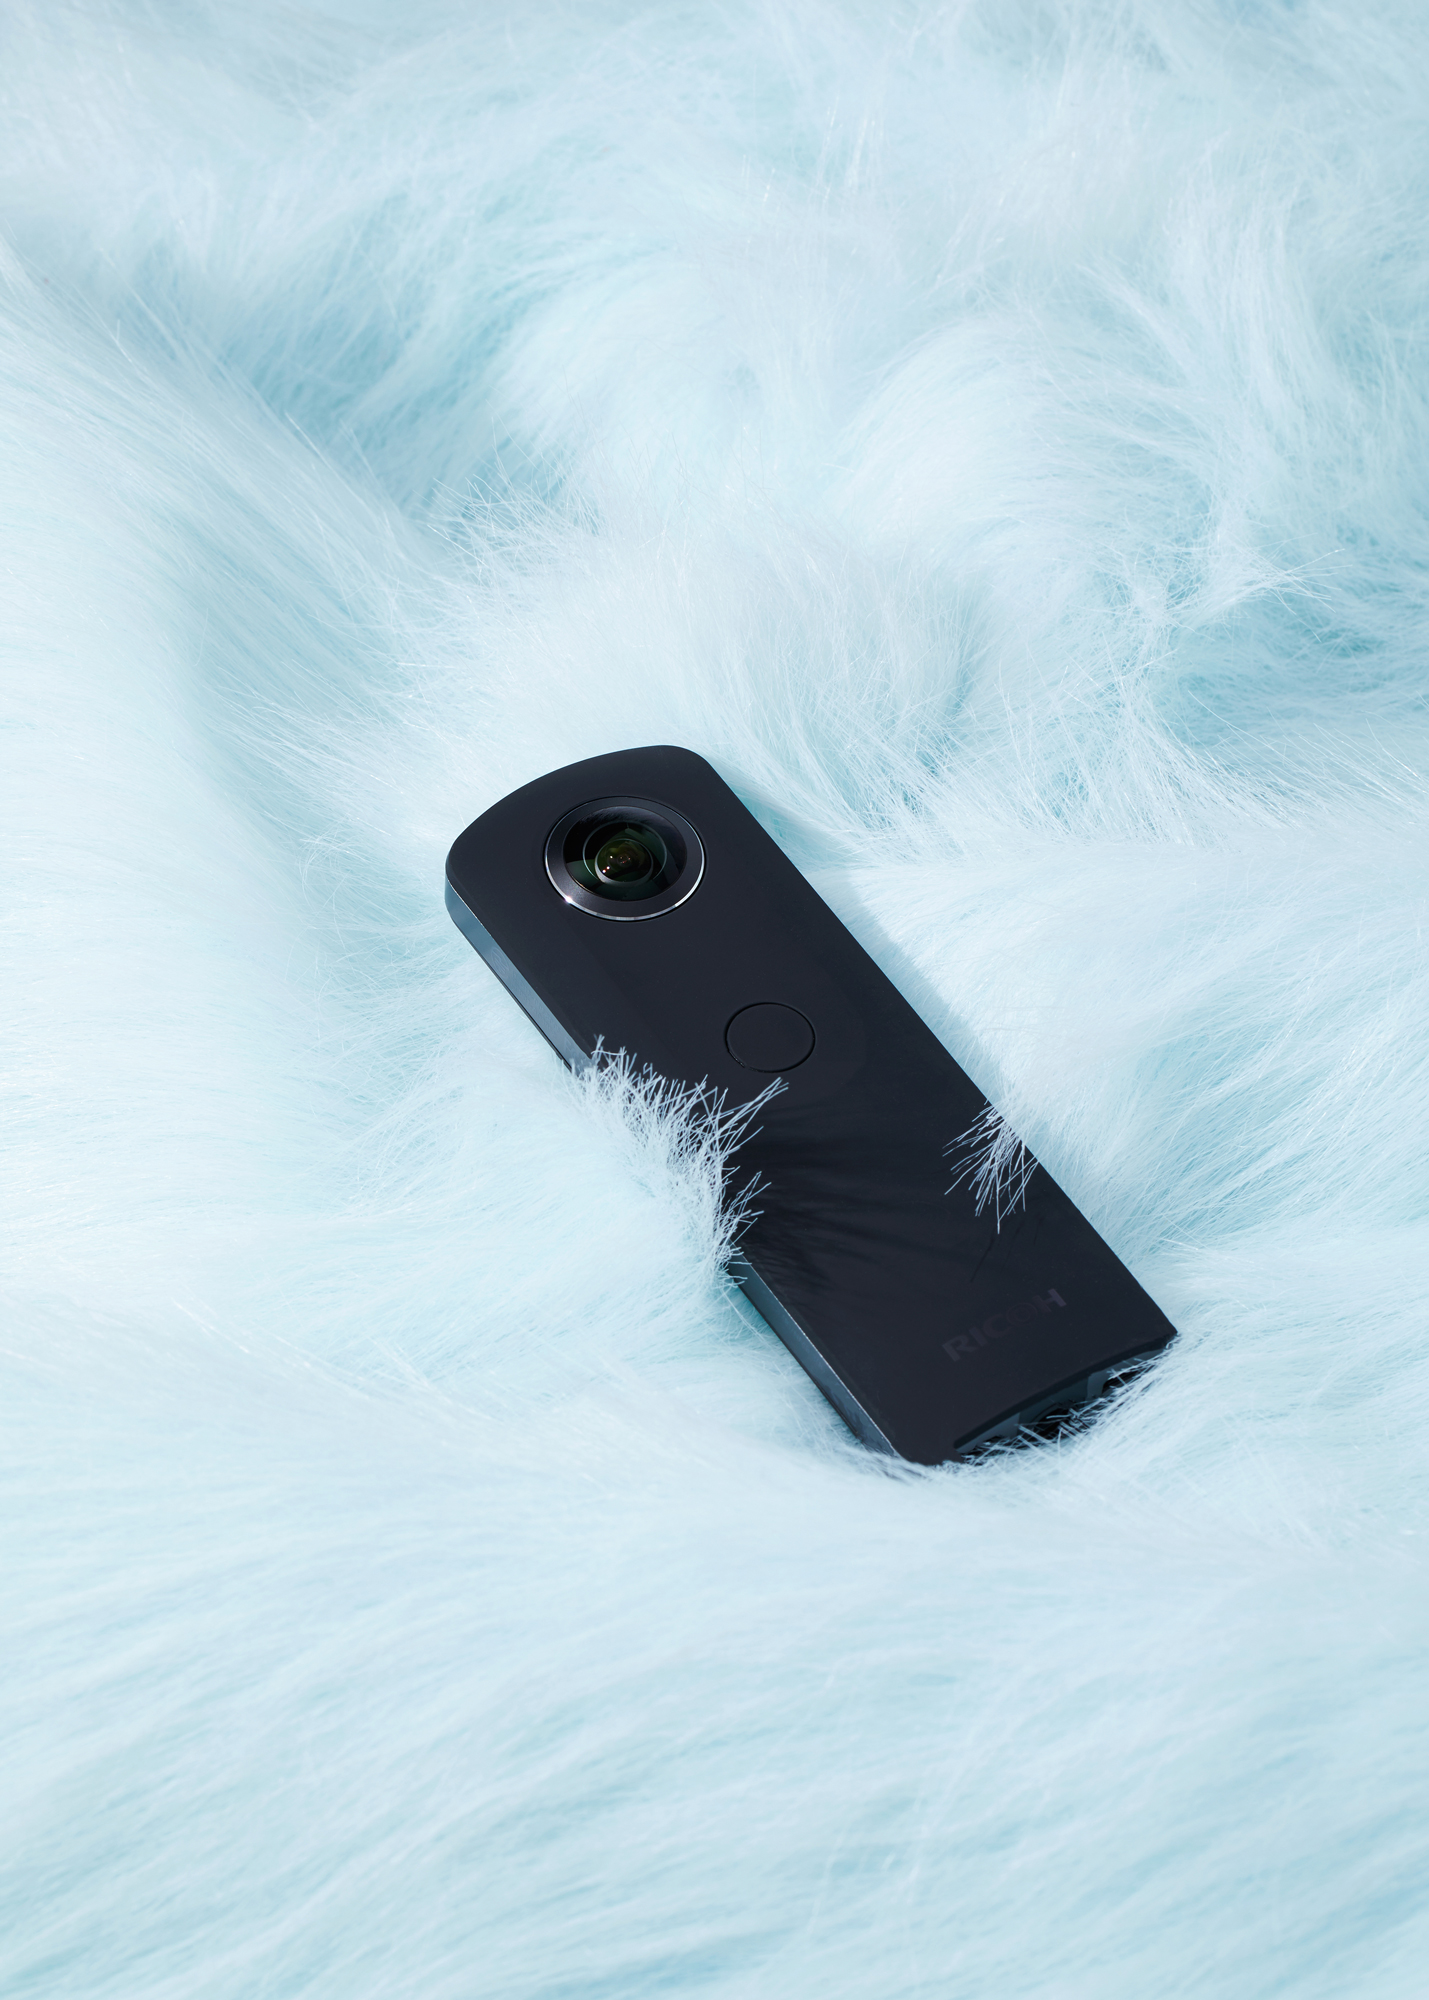 <b>Ricoh Theta S</b><br> Ricoh put the image sensors on the camera's sides instead of behind its lenses, making its thin shape possible.